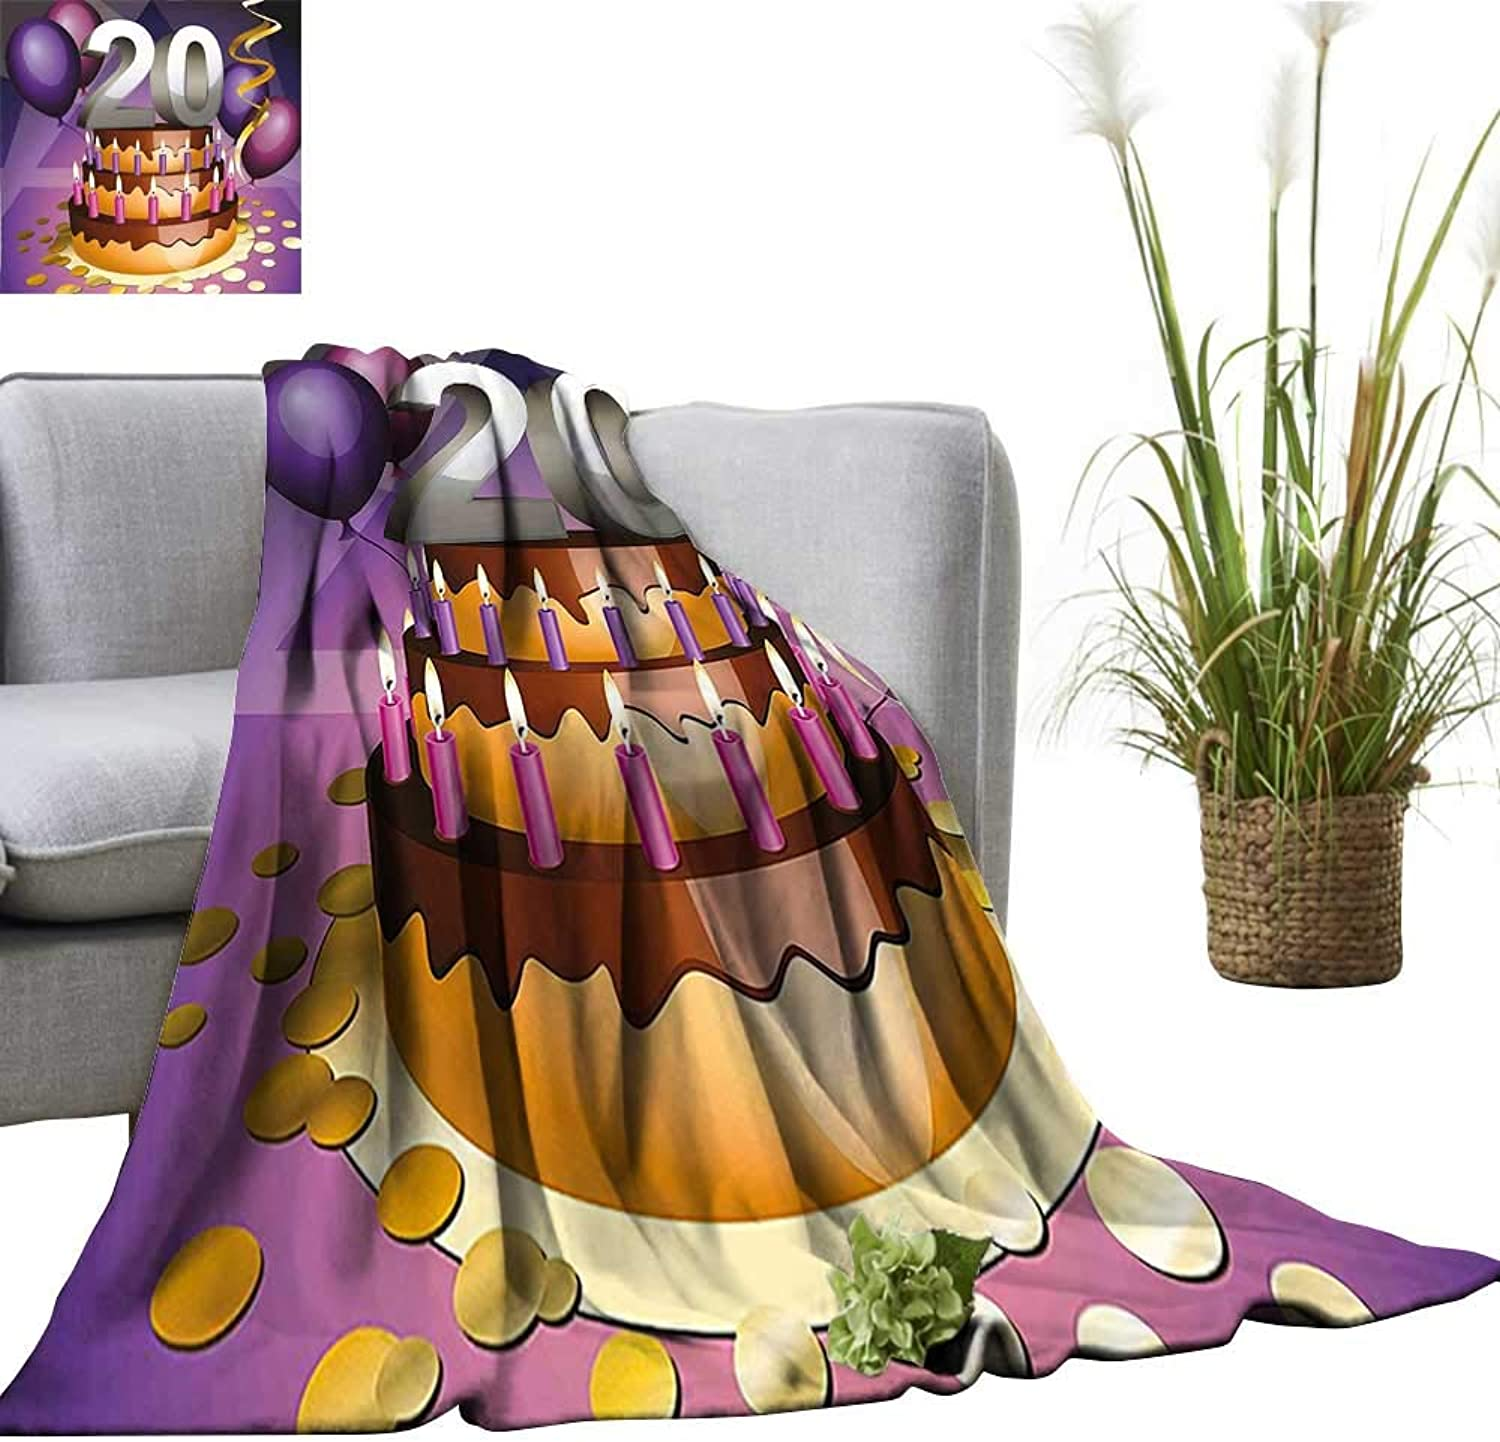 YOYI Baby Blanket Cartoon Print Birthday Cake golden Frosting and Candles Purple and purplec Indoor Outdoor, Comfortable for All Seasons 50 x70